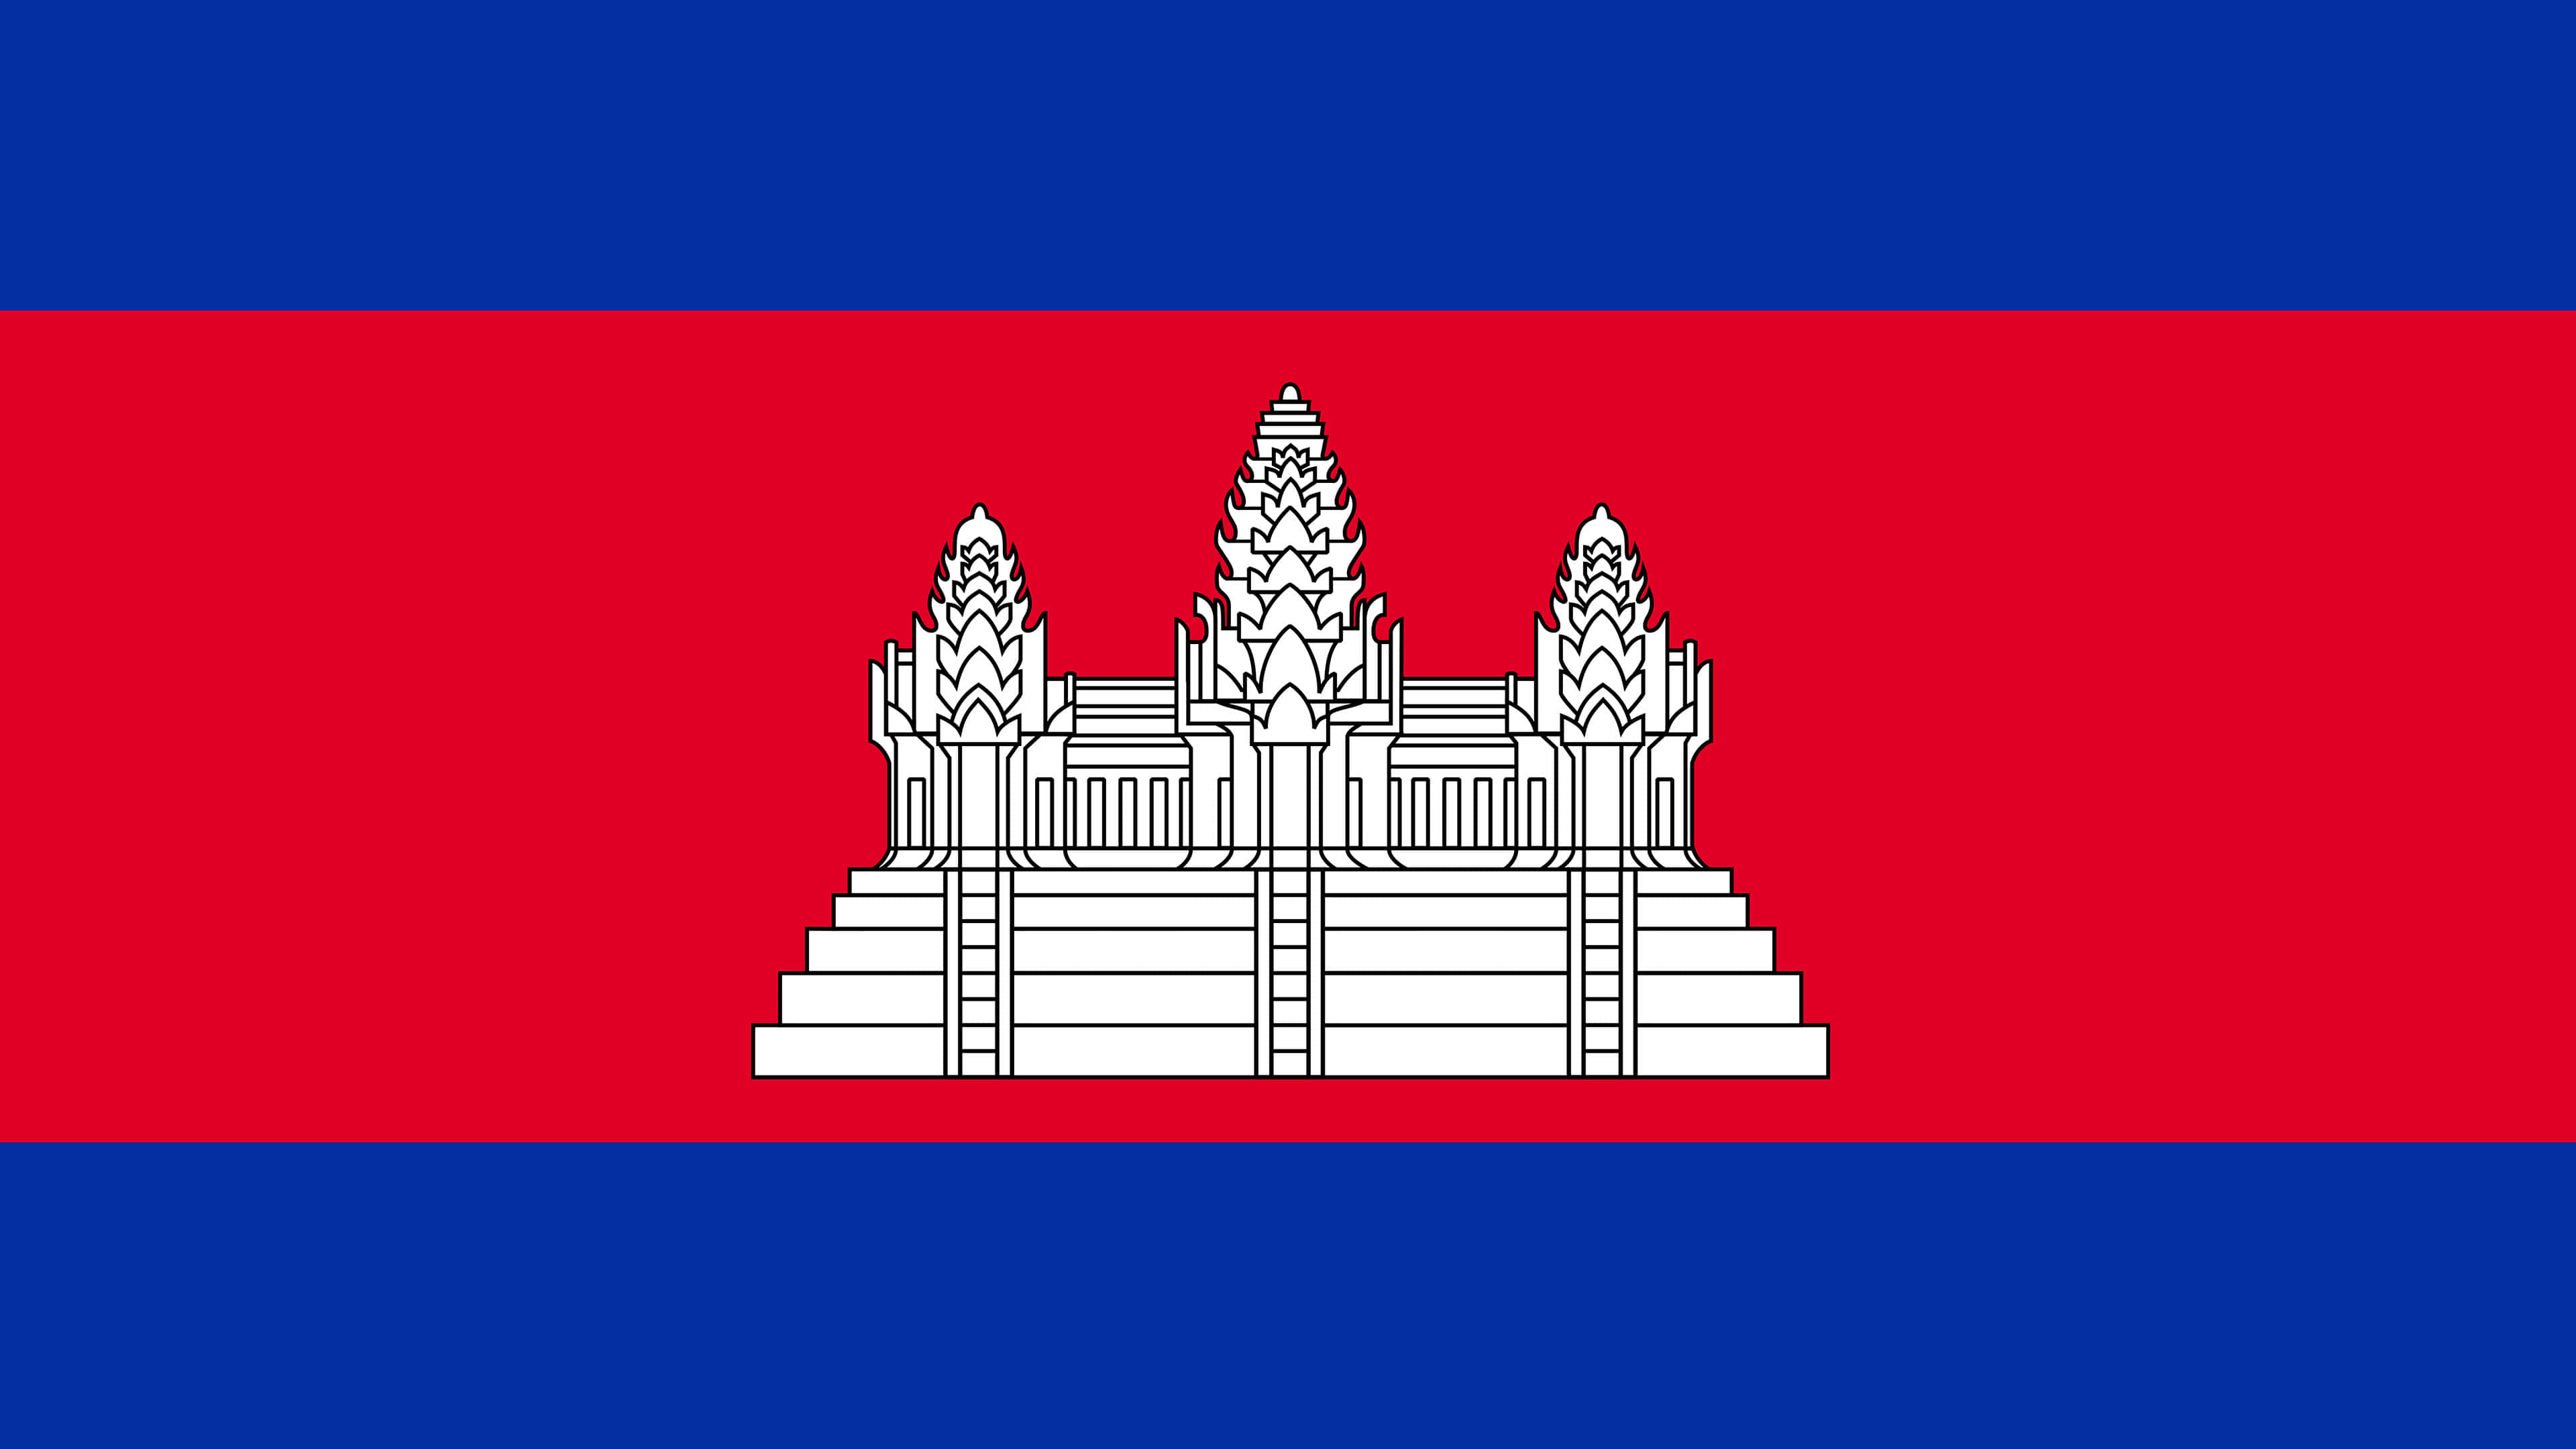 cambodia flag uhd 4k wallpaper